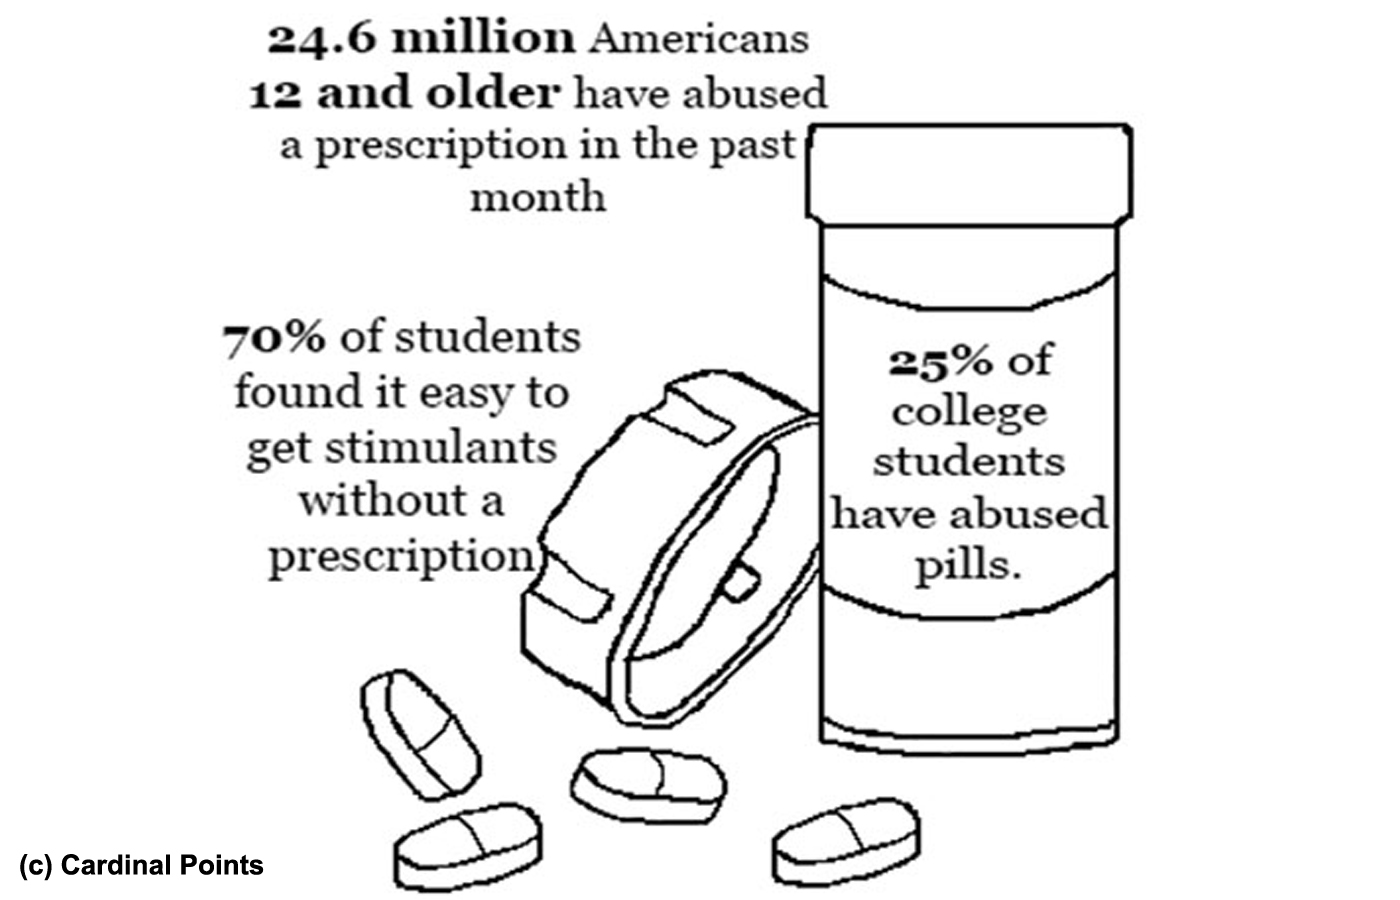 Abusing medication easy for students